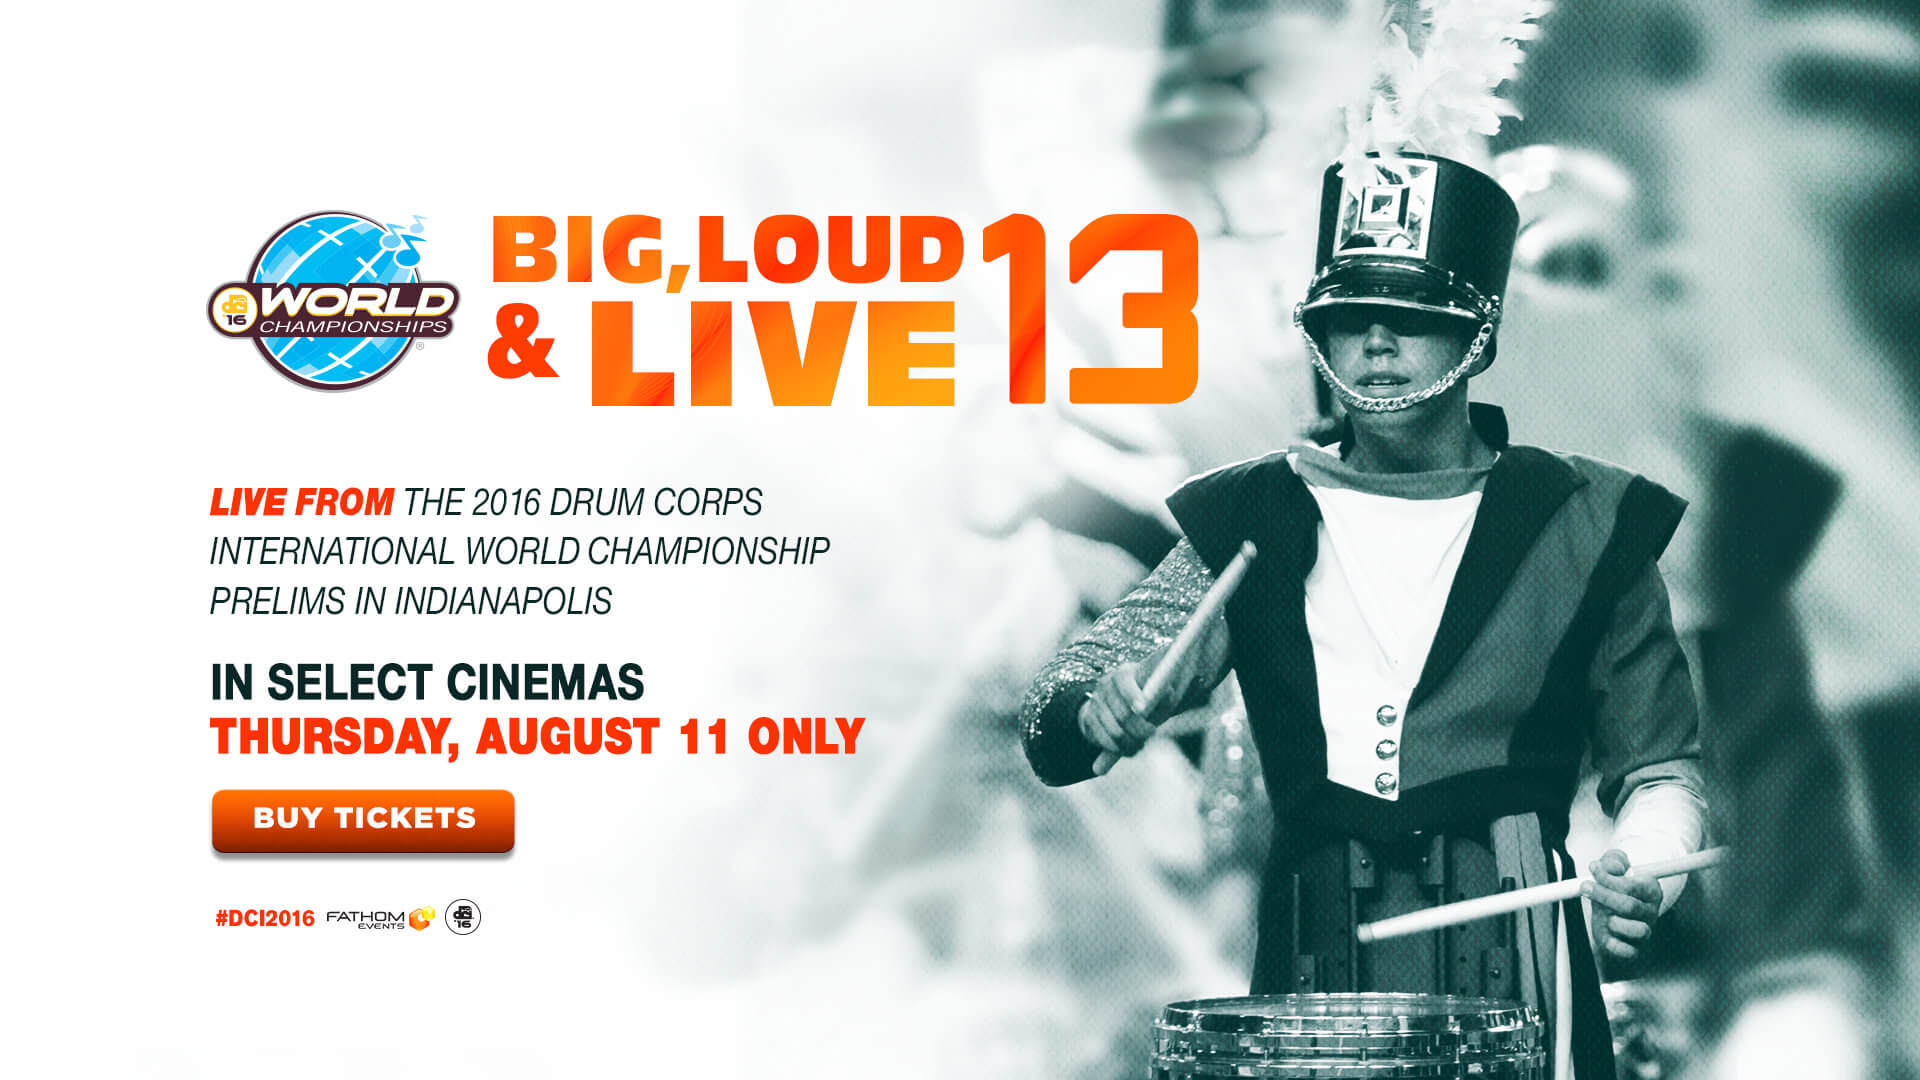 ?Big, Loud & Live? will return to movie theaters for 13th annual event